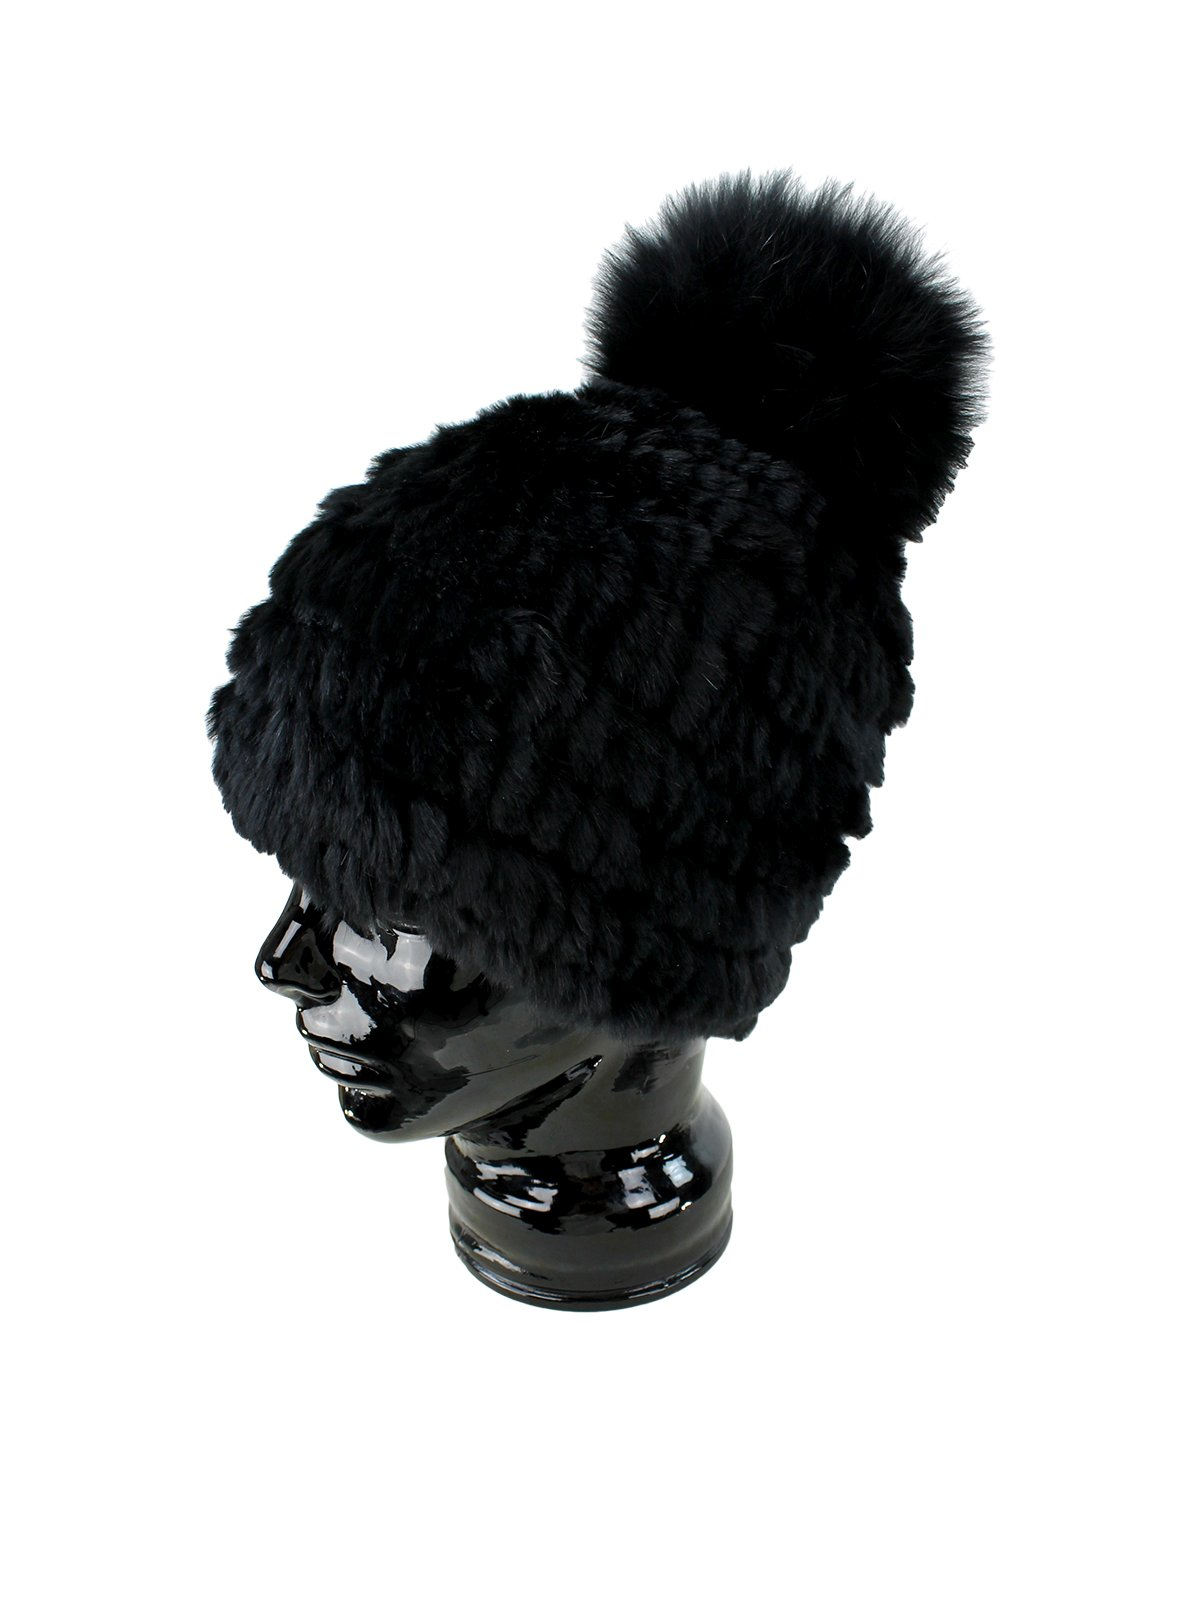 Woman's Black Knit Rex Rabbit Fur Hat with Black Fox Pom Pom